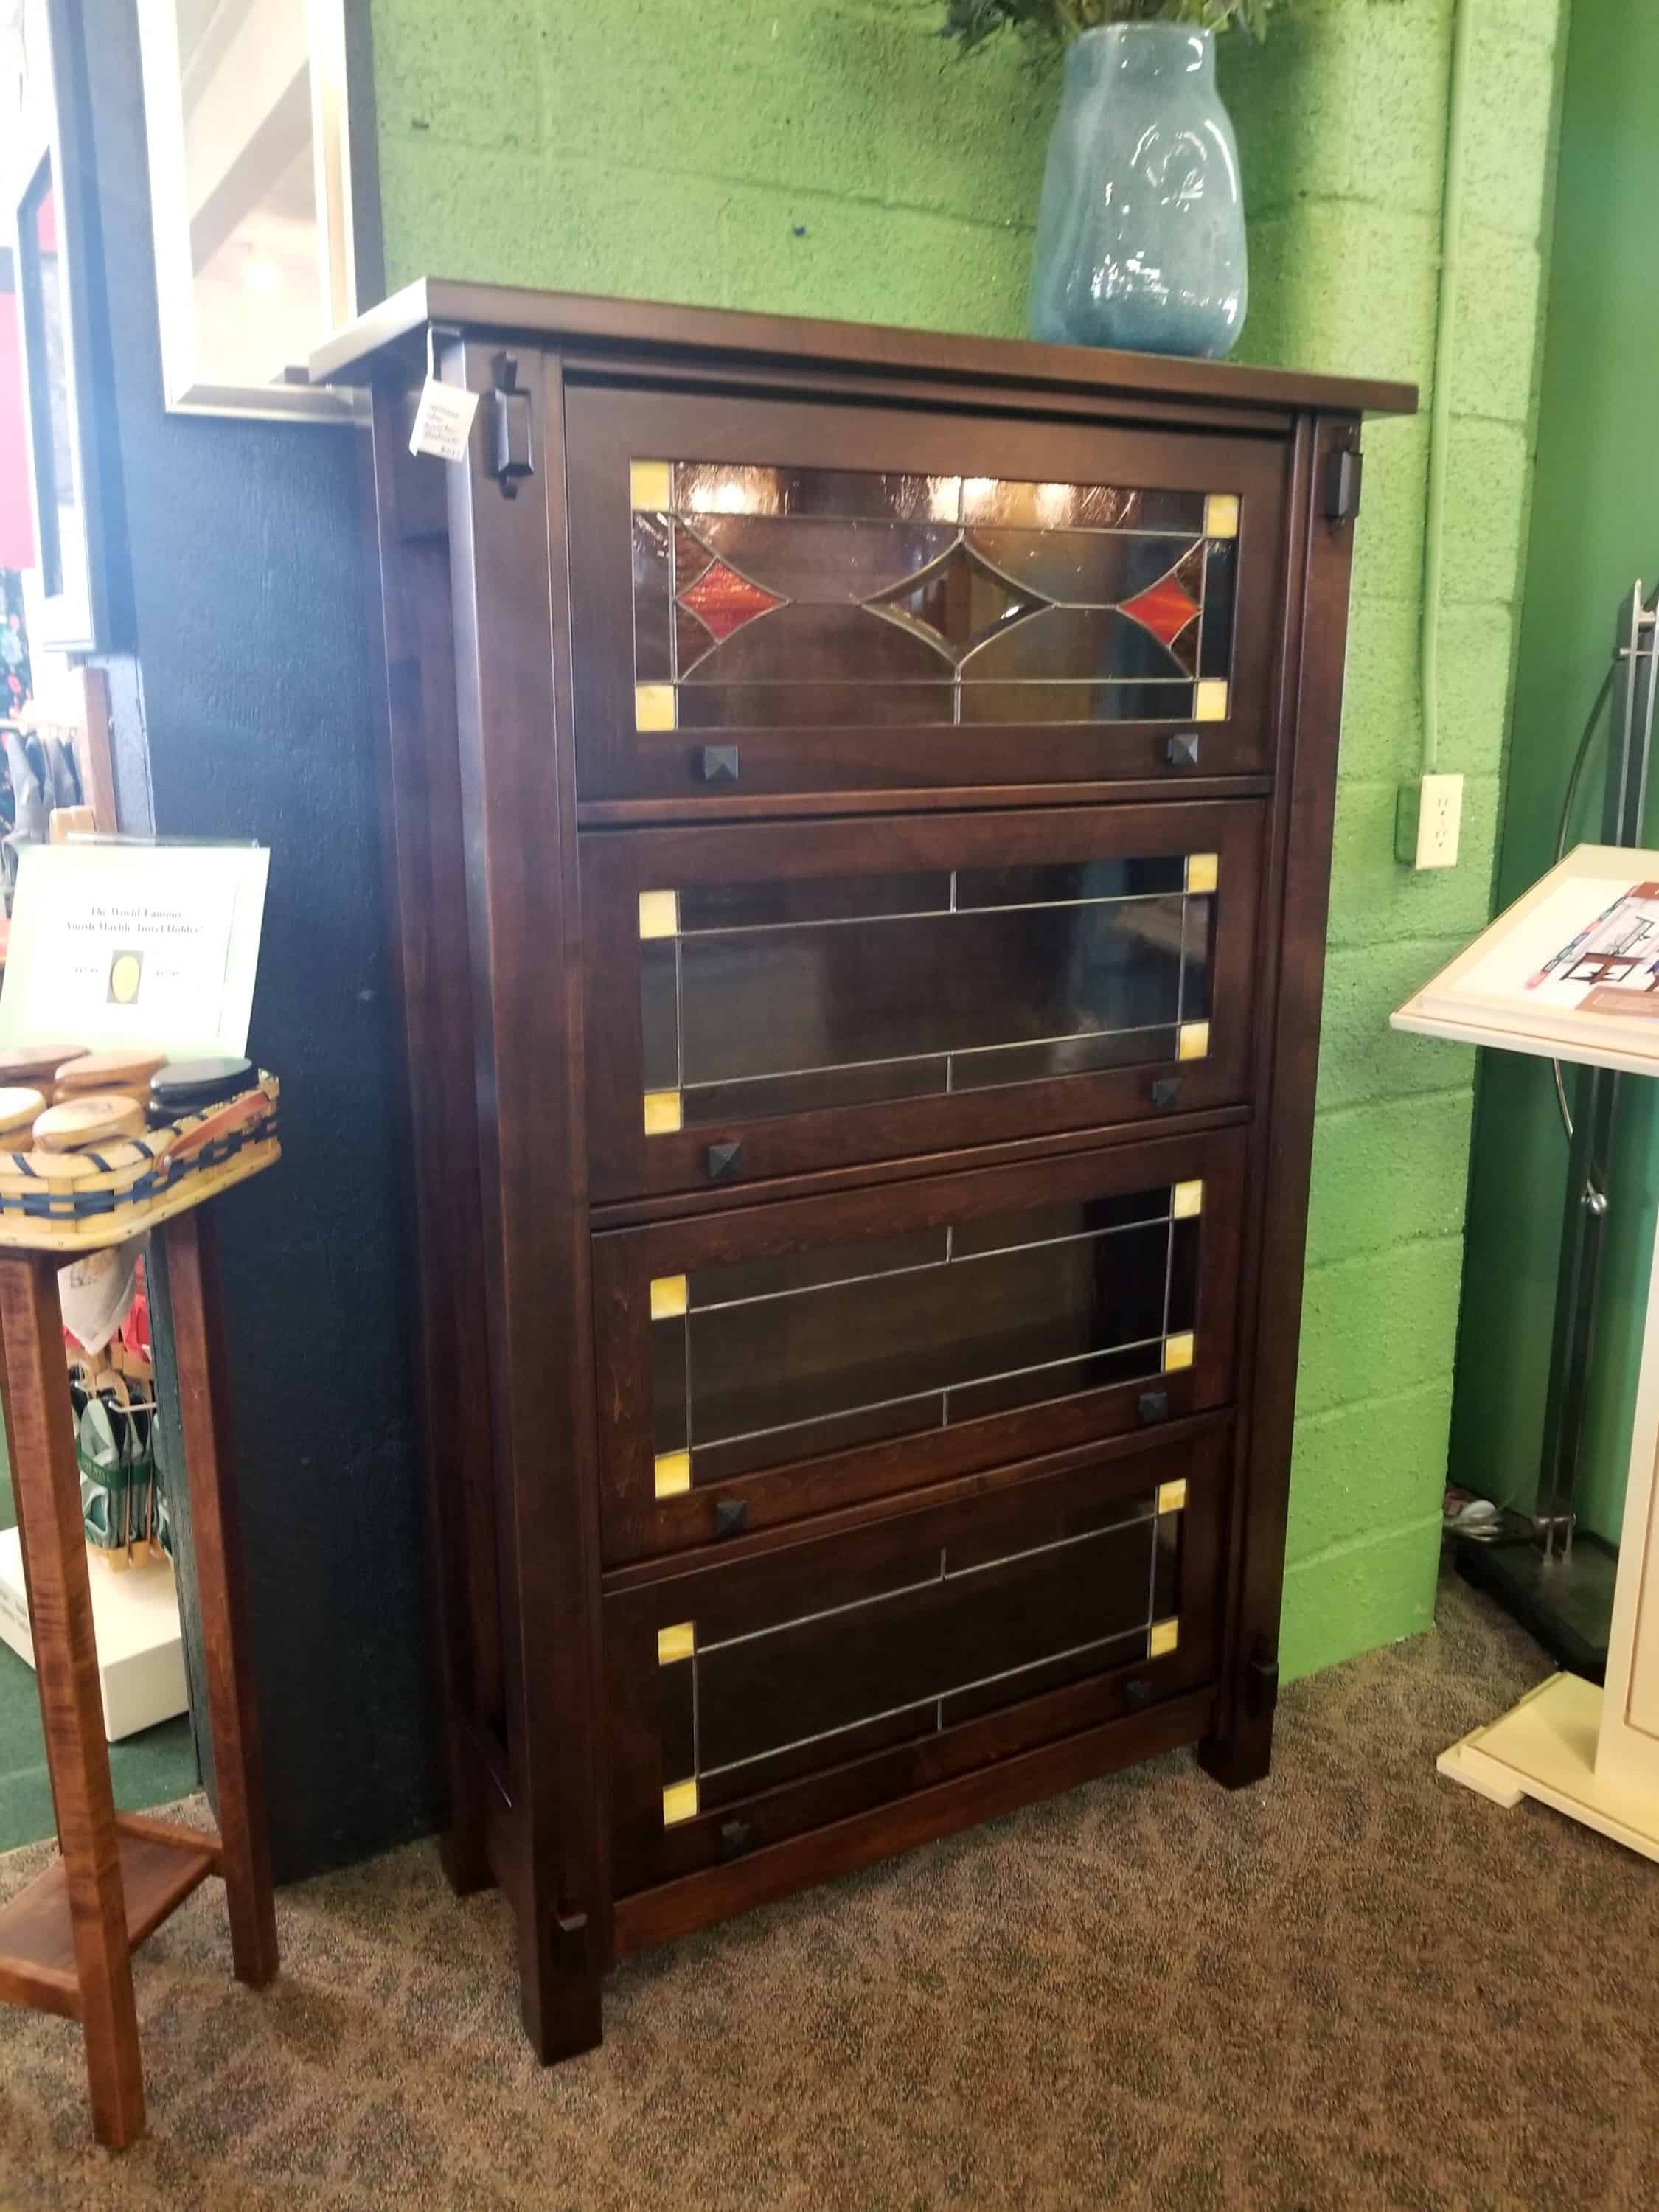 Craftsman 4 Door Barrister Bookcase Shown In Brown Maple With A Rich Tobacco Finish